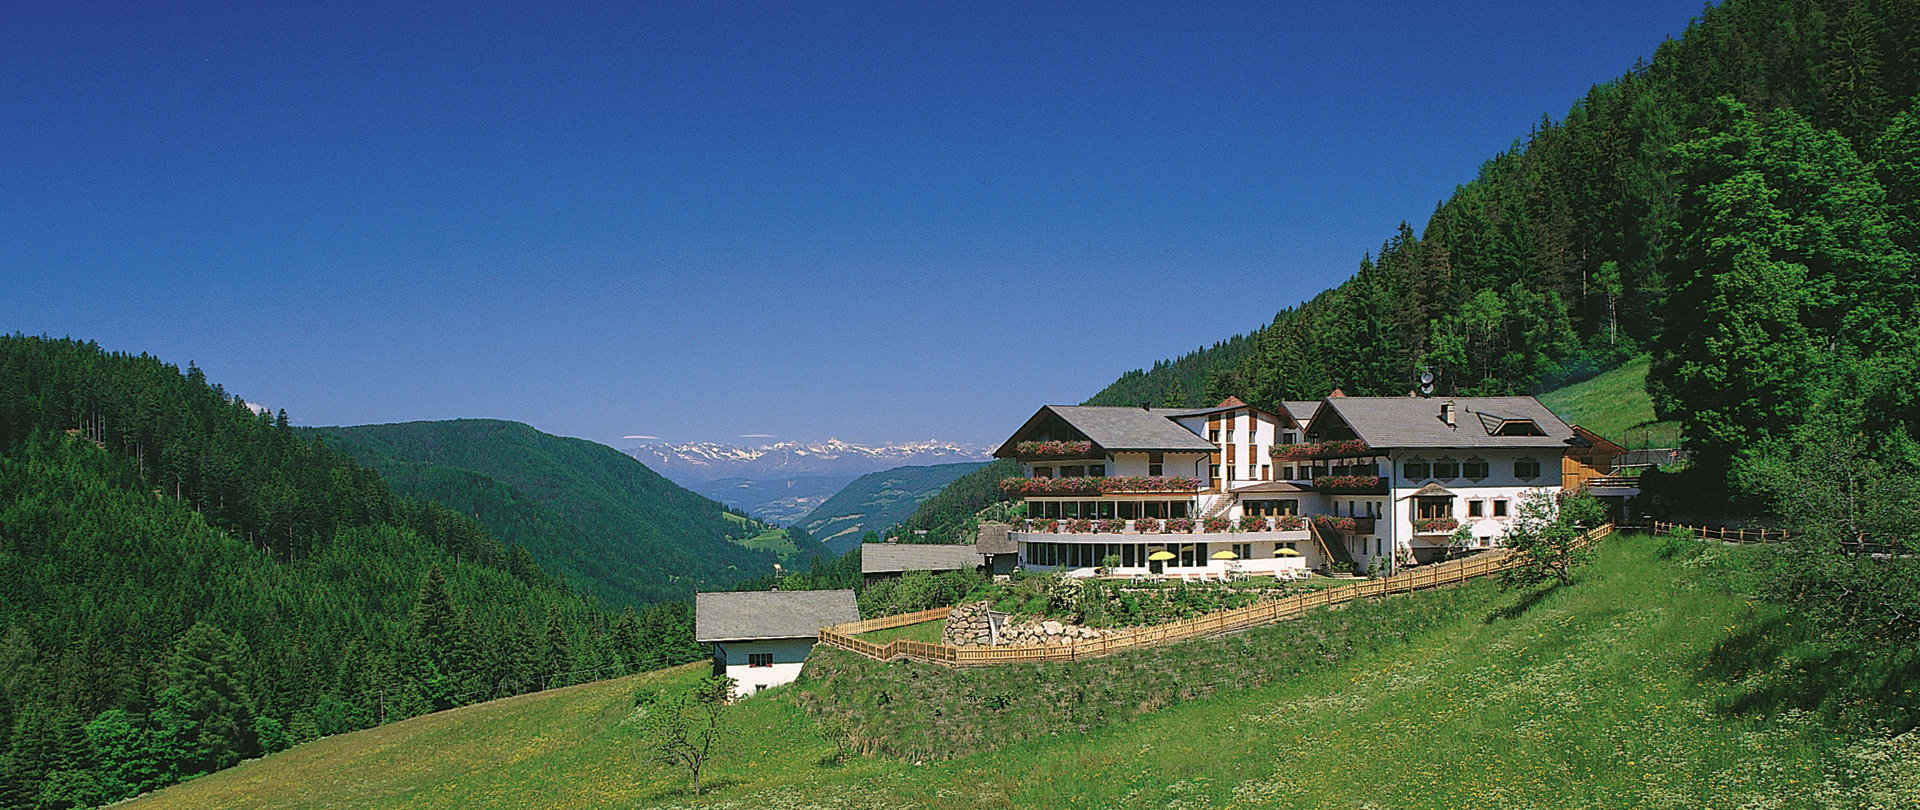 Hotel Oberlehenhof in the Eggental,